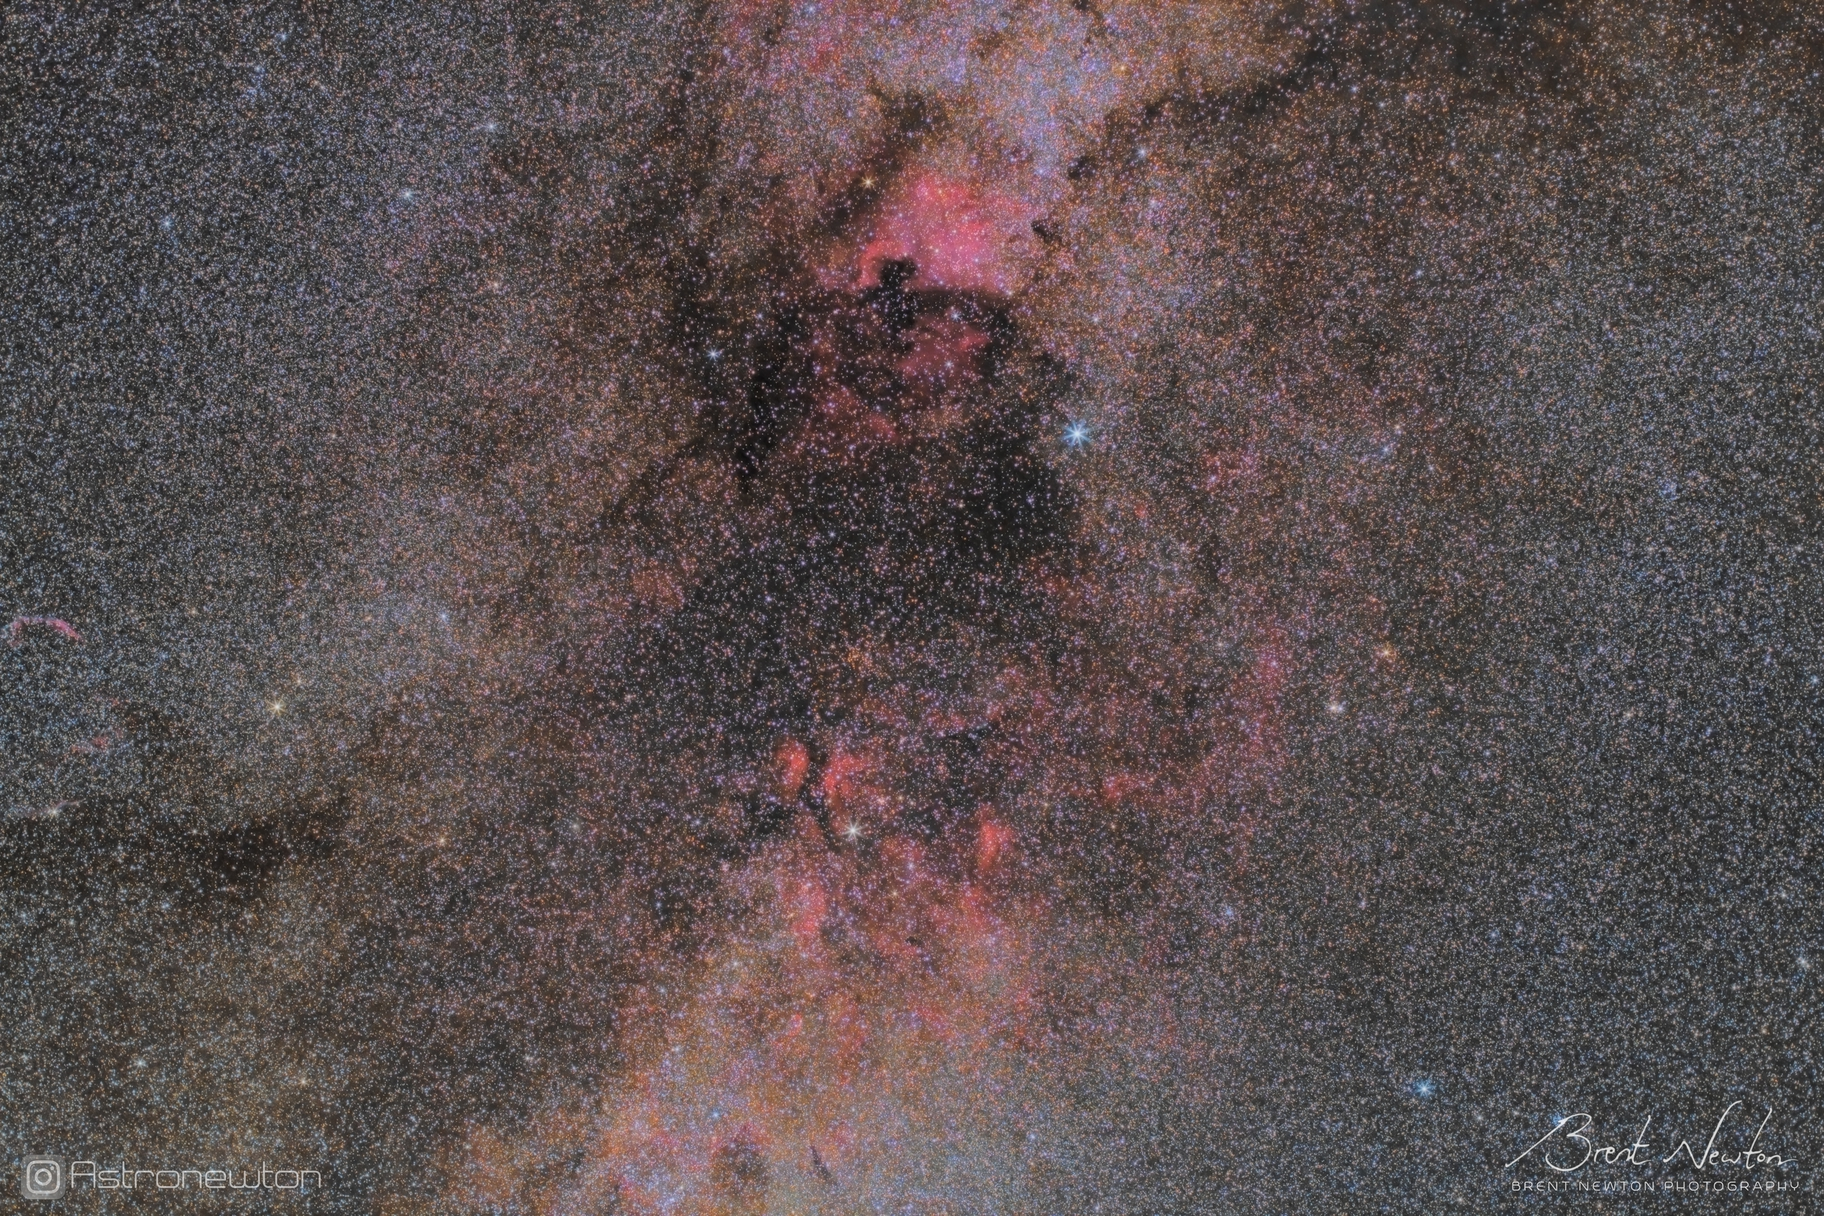 Cygnus midfield at 50mm, one hour total exposure from a Bortle 2 site